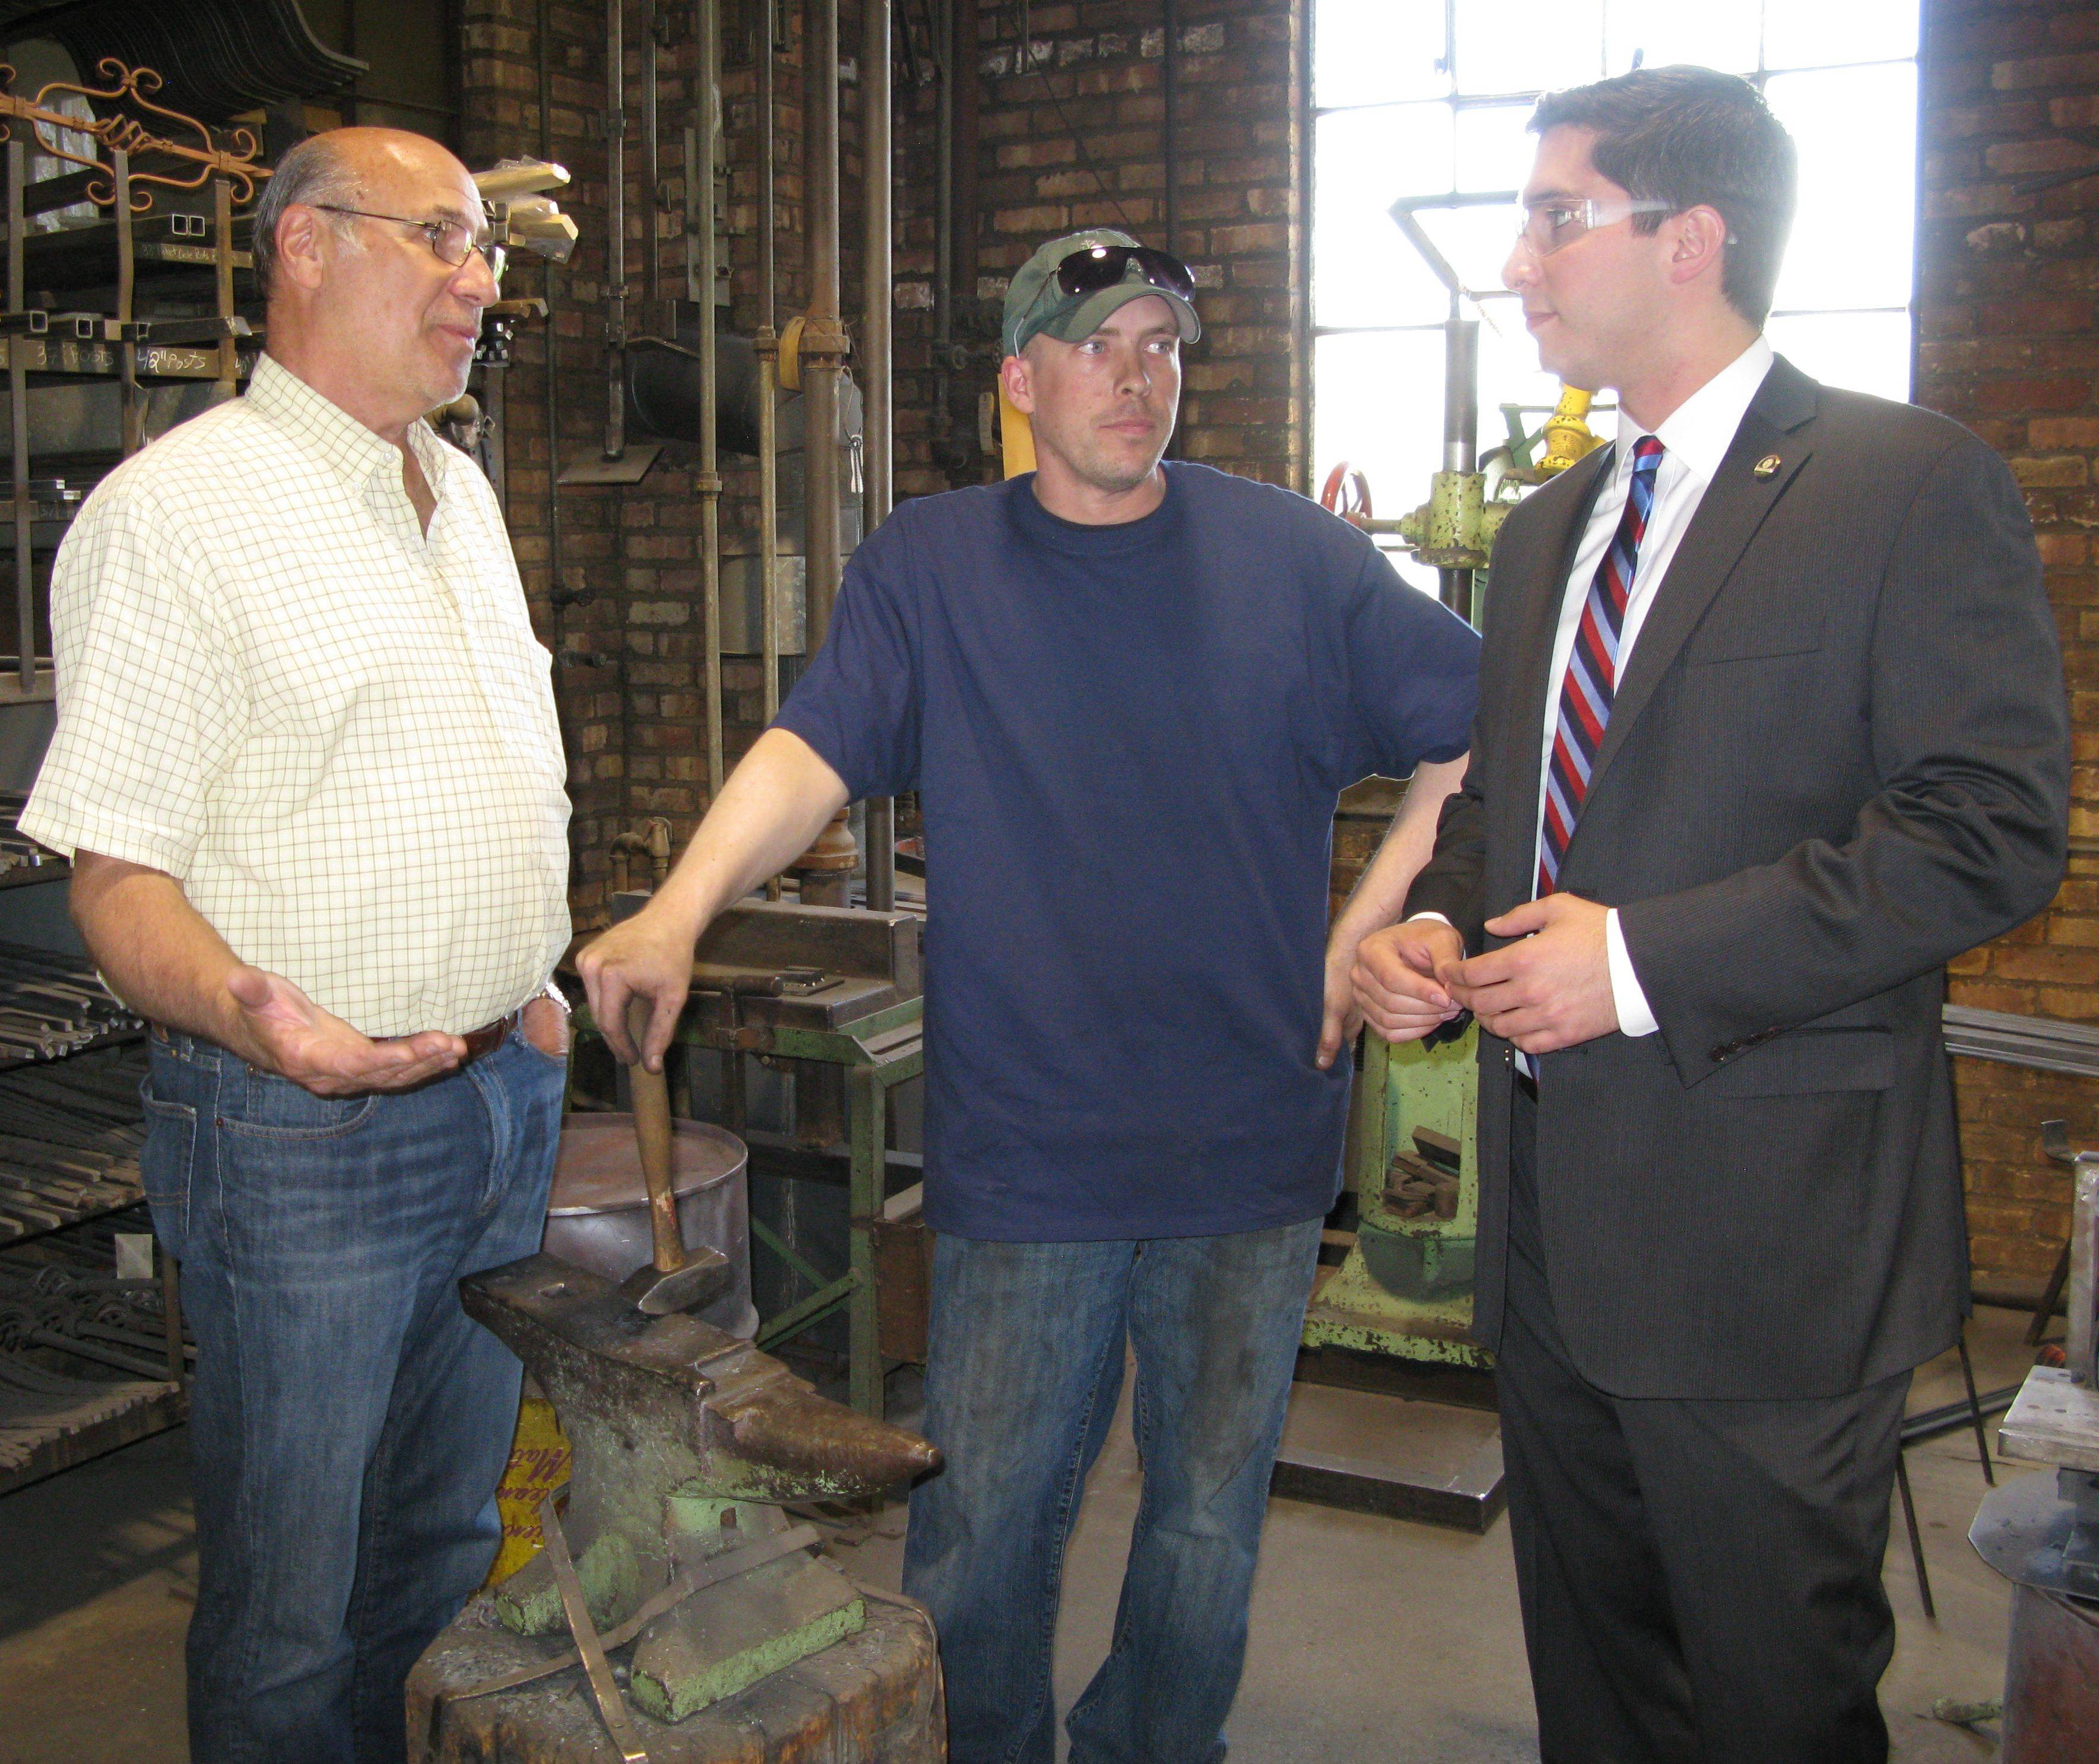 Des Plaines Mayor Matt Bogusz, right, meets with local business owner Steve Burval, left, owner of J.B. Metal Works, and his longtime employee, Mike Jaeger, on his first day as mayor. Bogusz said Tuesday a streamlining of the city's regulations should make it easier to open a business.